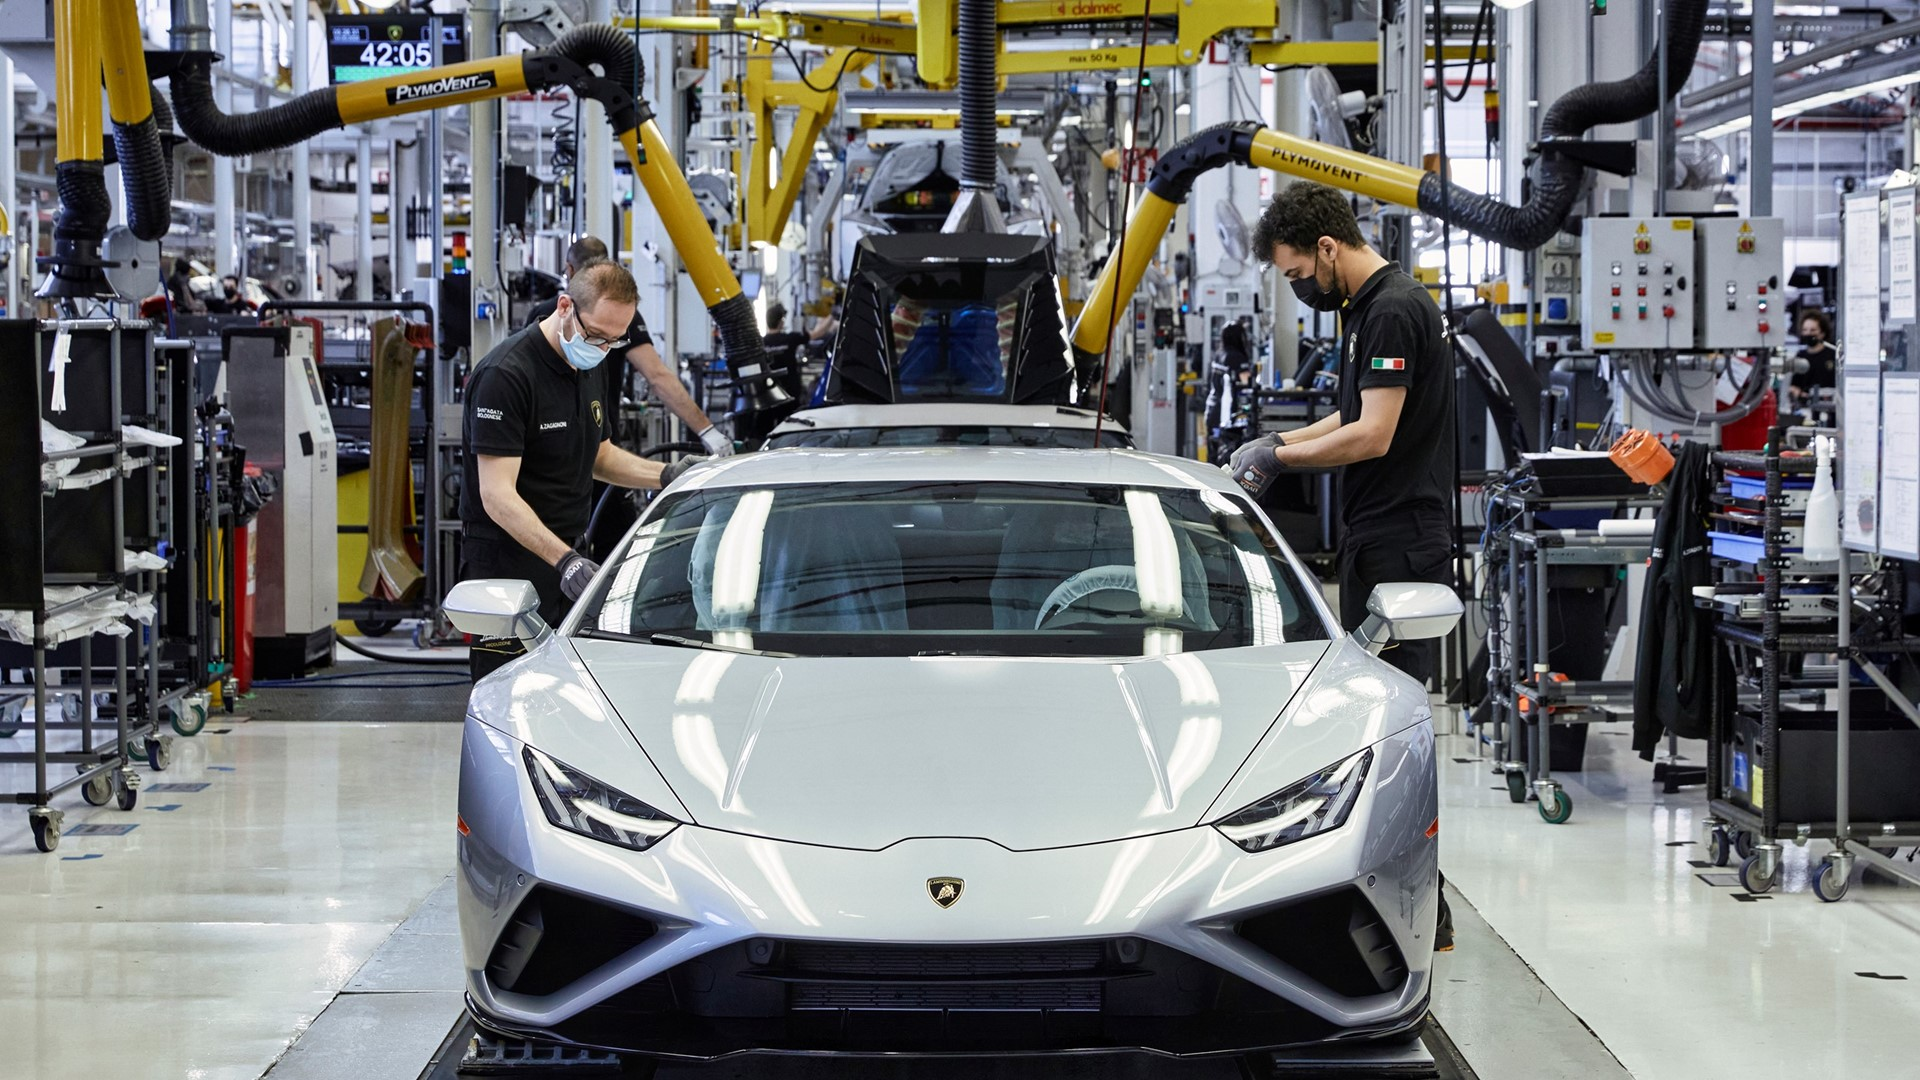 Automobili Lamborghini prepares to restart production on May 4 with people-safety foremost - Image 4